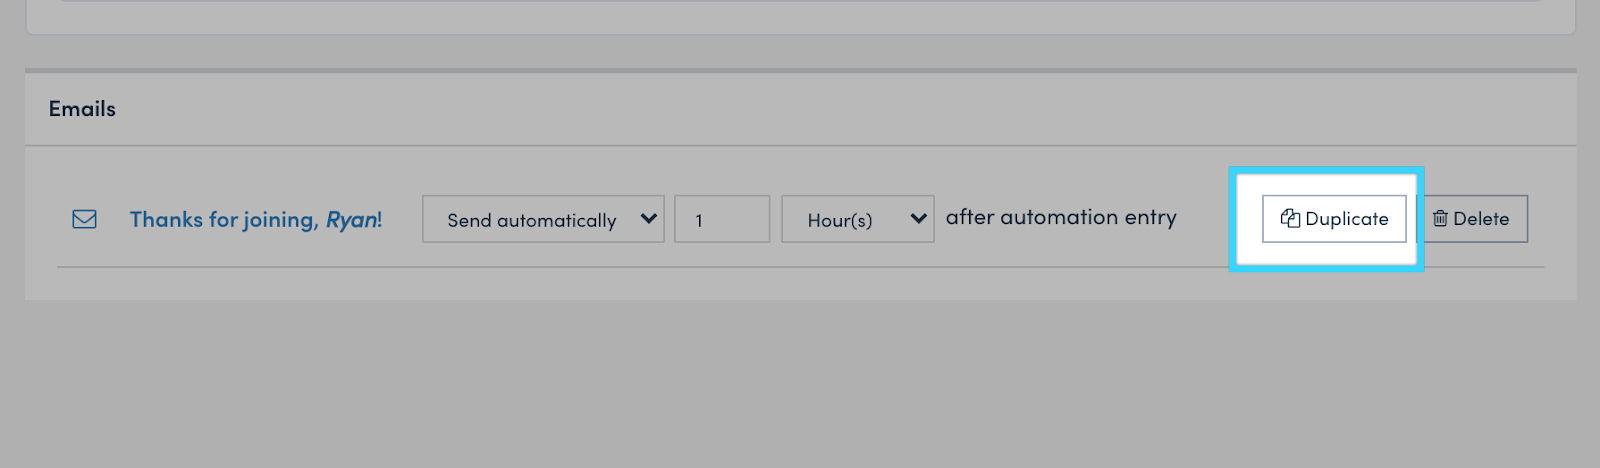 Duplicating a welcome email.